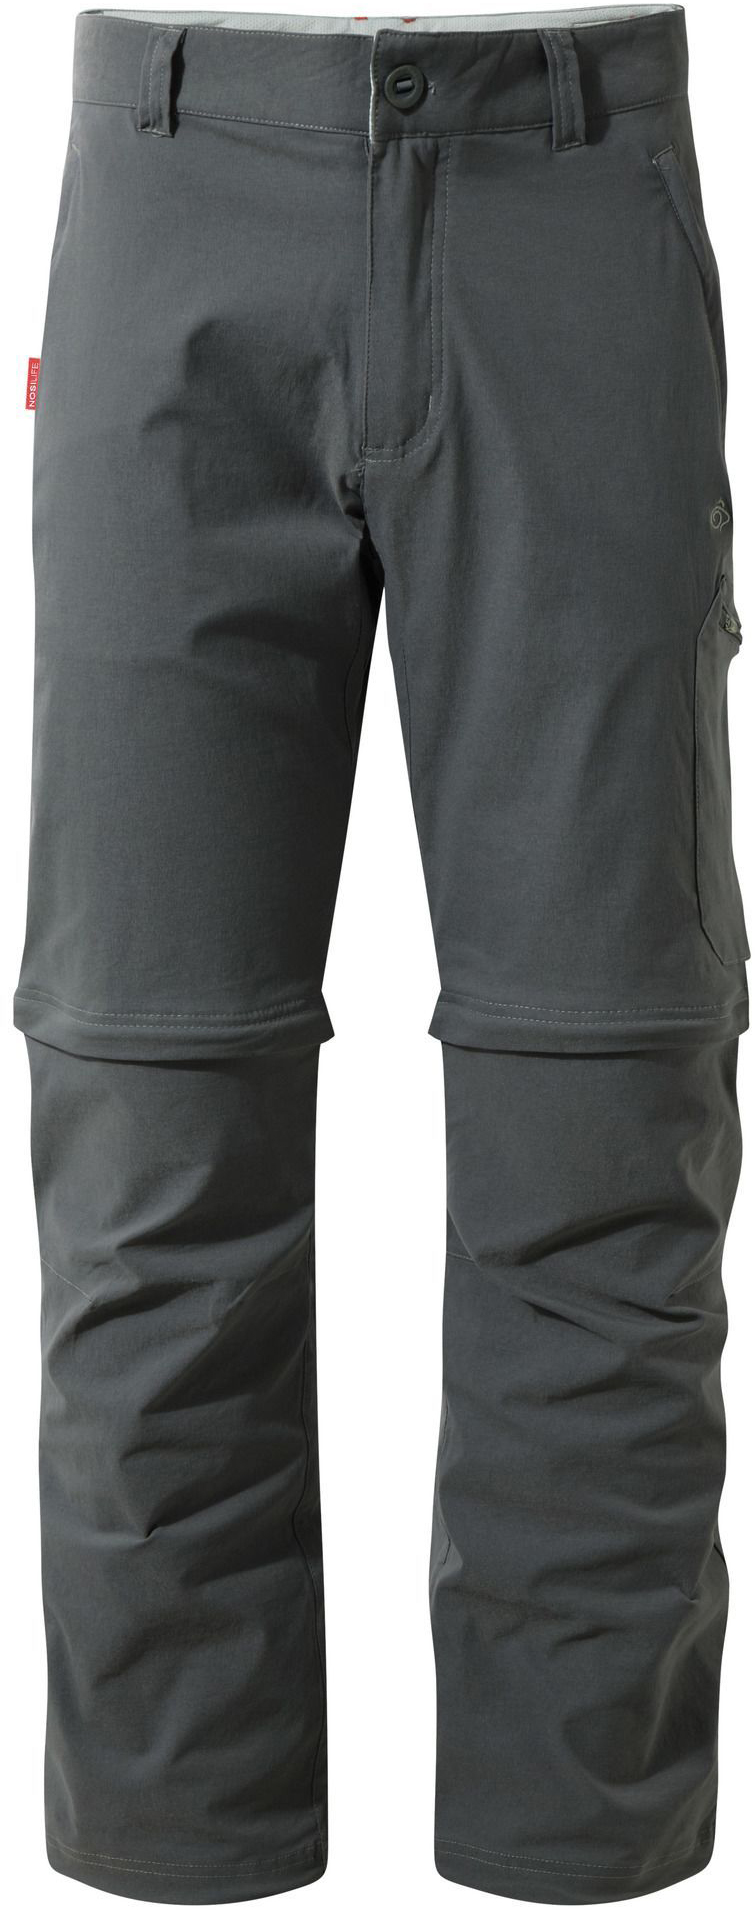 Craghoppers NosiLife Pro Convertible   item_misc